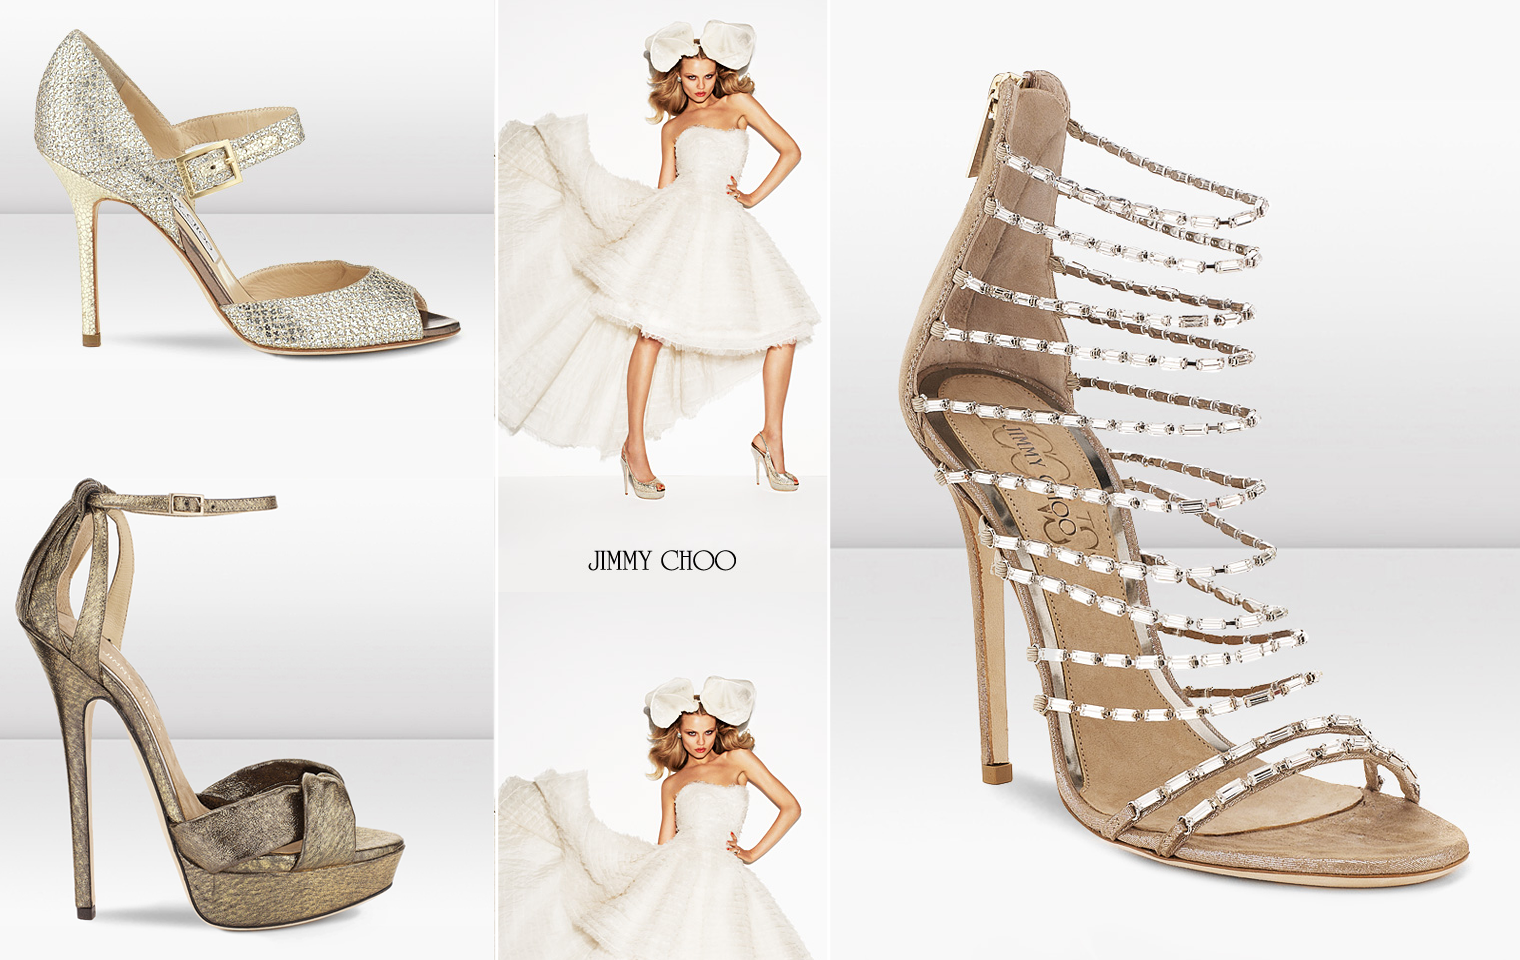 Jimmy-choo-wedding-shoes.original